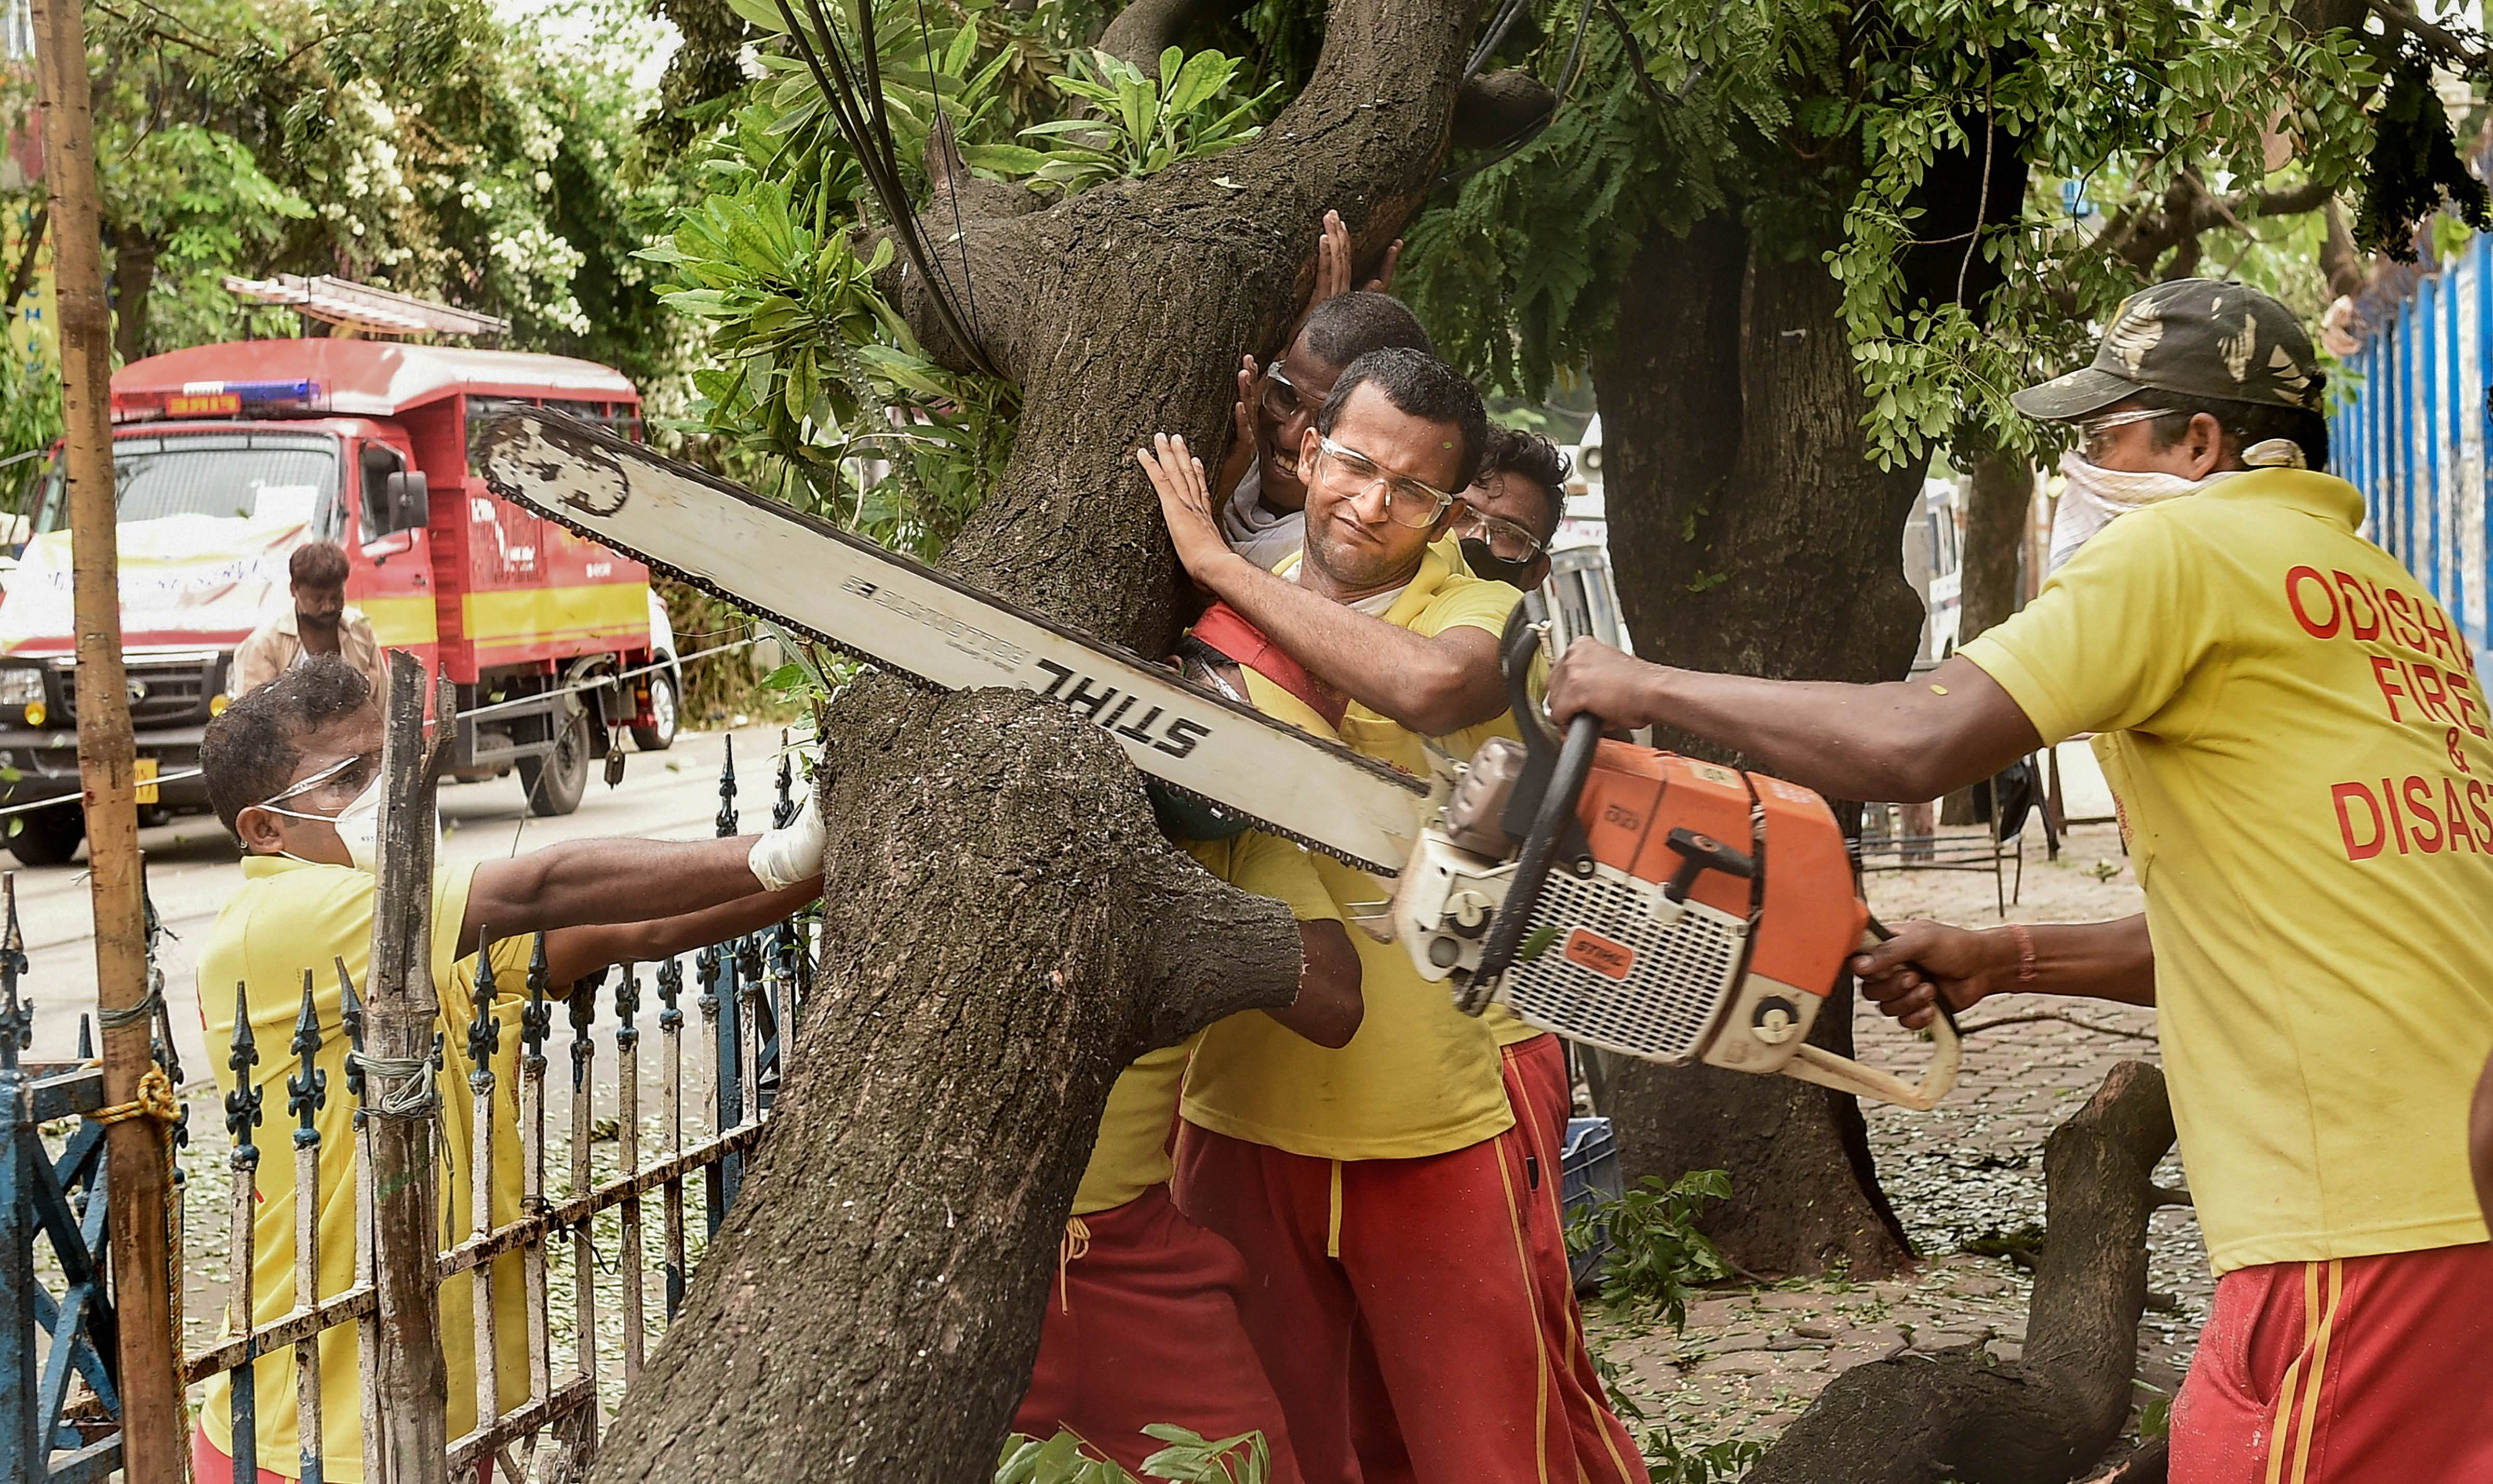 Odisha Fire and Disaster personnel cut an uprooted tree to clear a road, in the aftermath of cyclone Amphan, in Calcutta, Monday, May 25, 2020